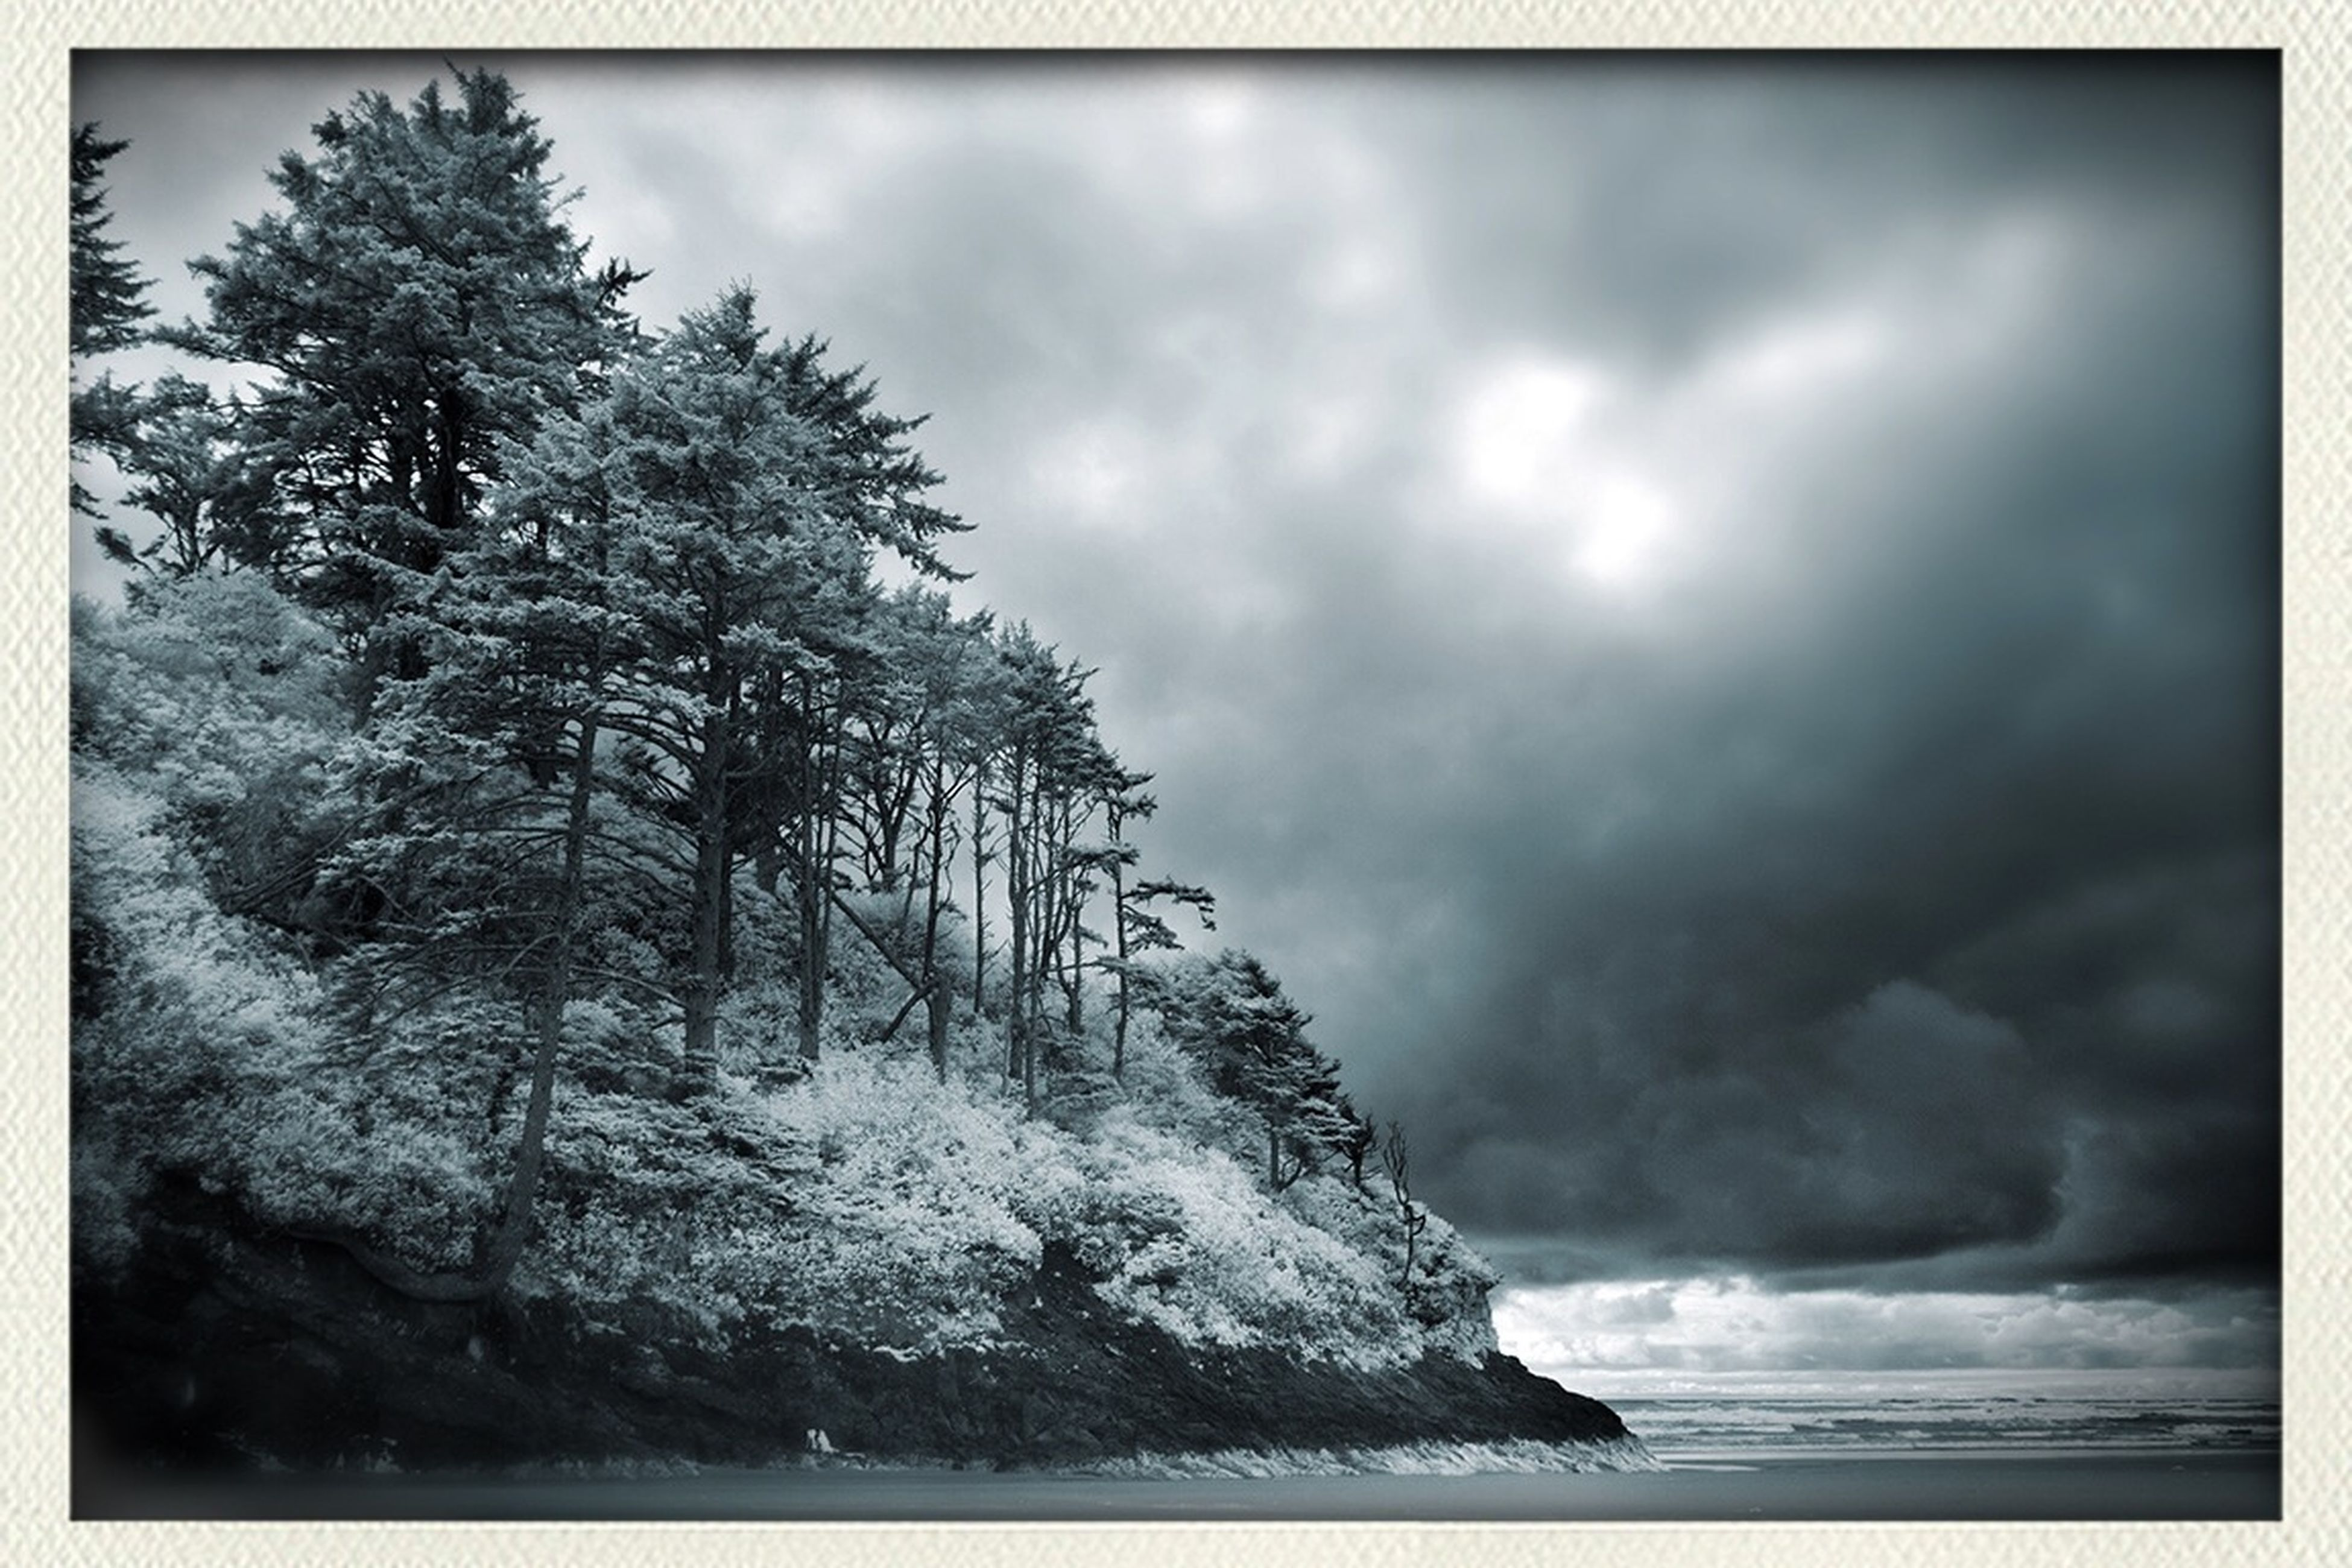 sky, transfer print, cloud - sky, tranquil scene, tranquility, water, cloudy, scenics, beauty in nature, auto post production filter, tree, nature, sea, cloud, overcast, weather, idyllic, rock - object, non-urban scene, outdoors